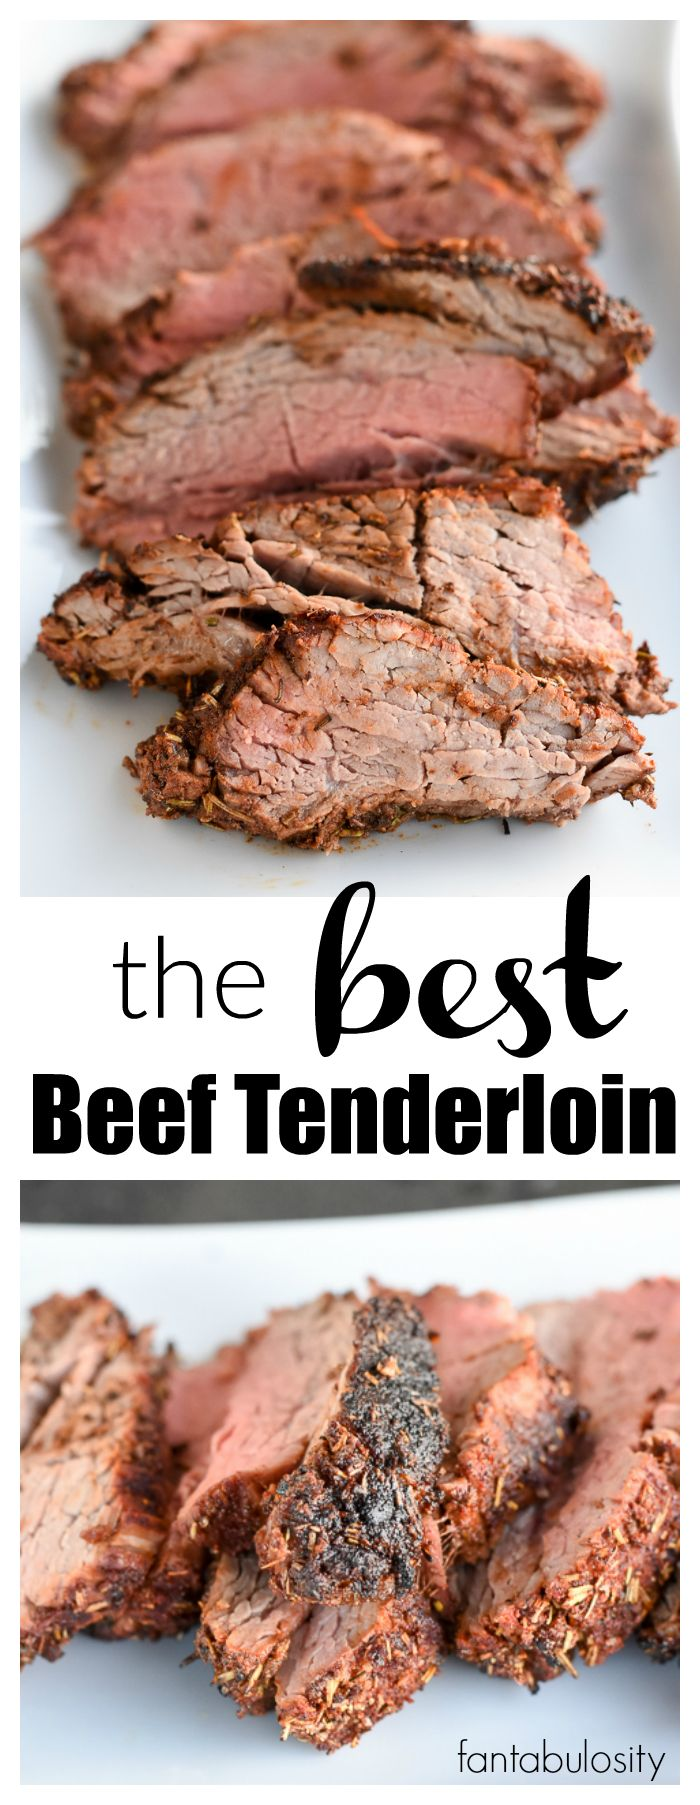 Holy Cow!!! This is the BEST Beef Tenderloin Recipe around! http://fantabulosity.com